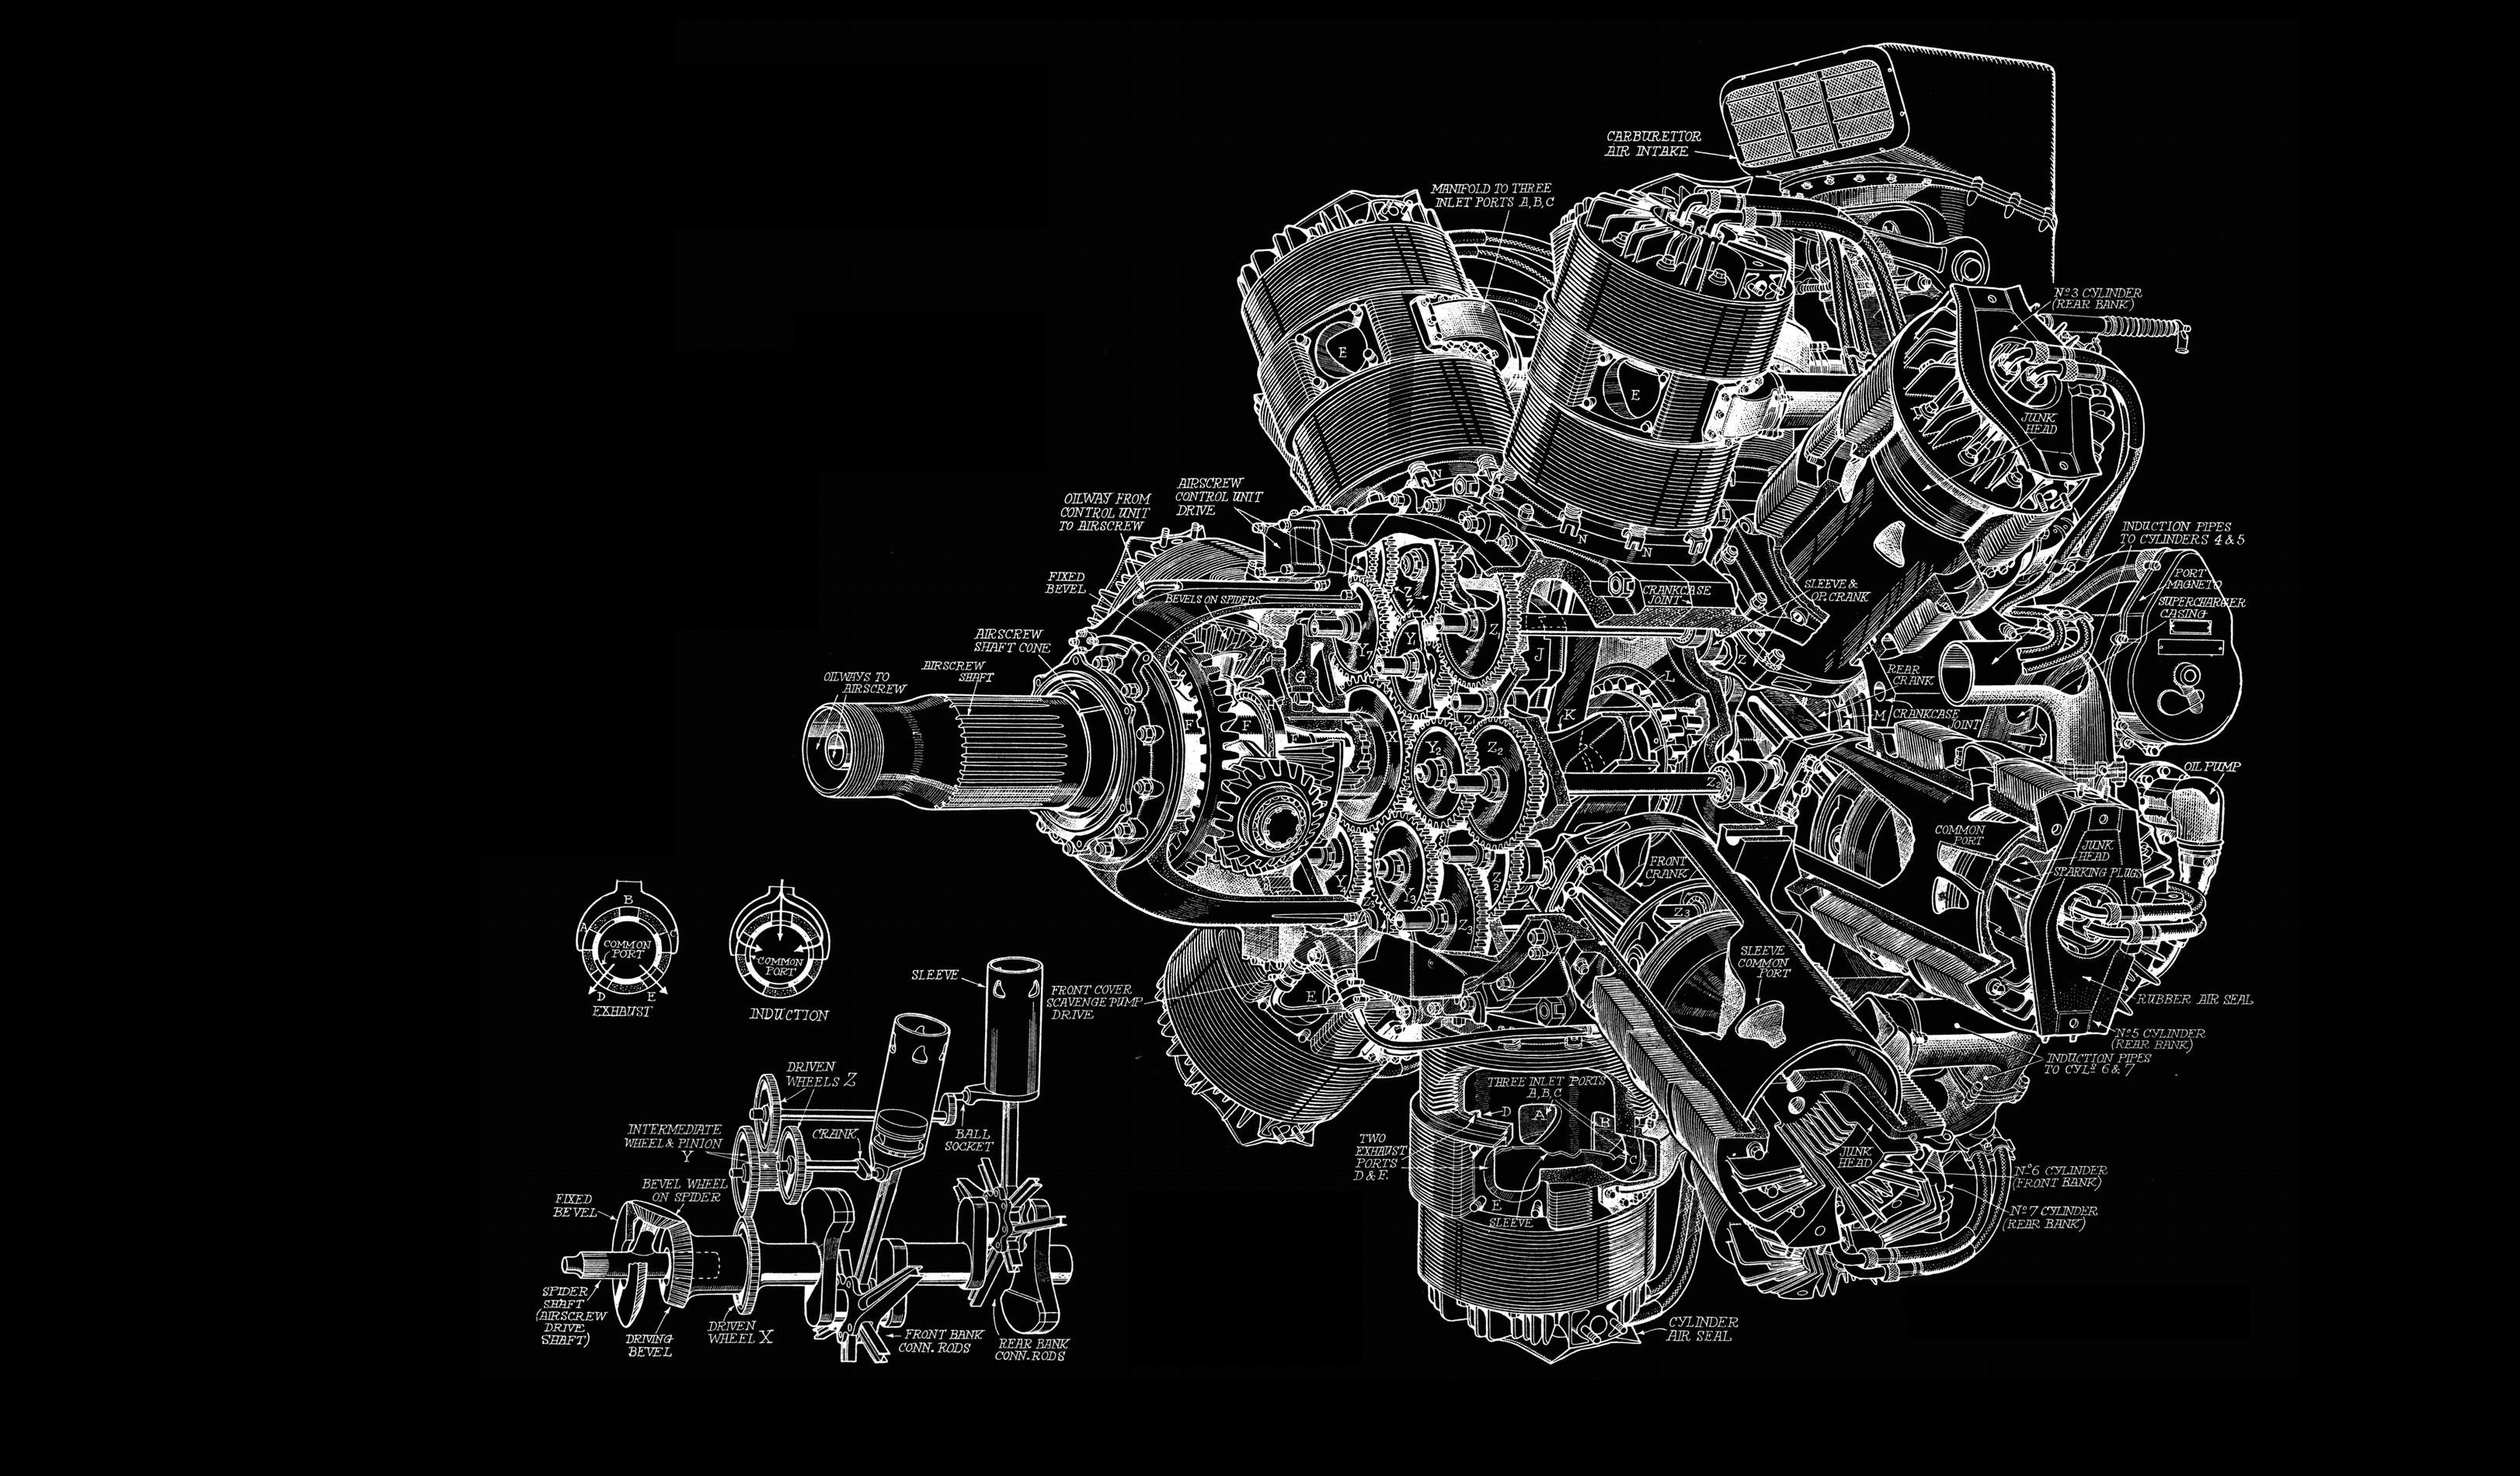 hight resolution of 3244x1900 general 3244x1900 engines schematic airplane sketches engineering turbine gears